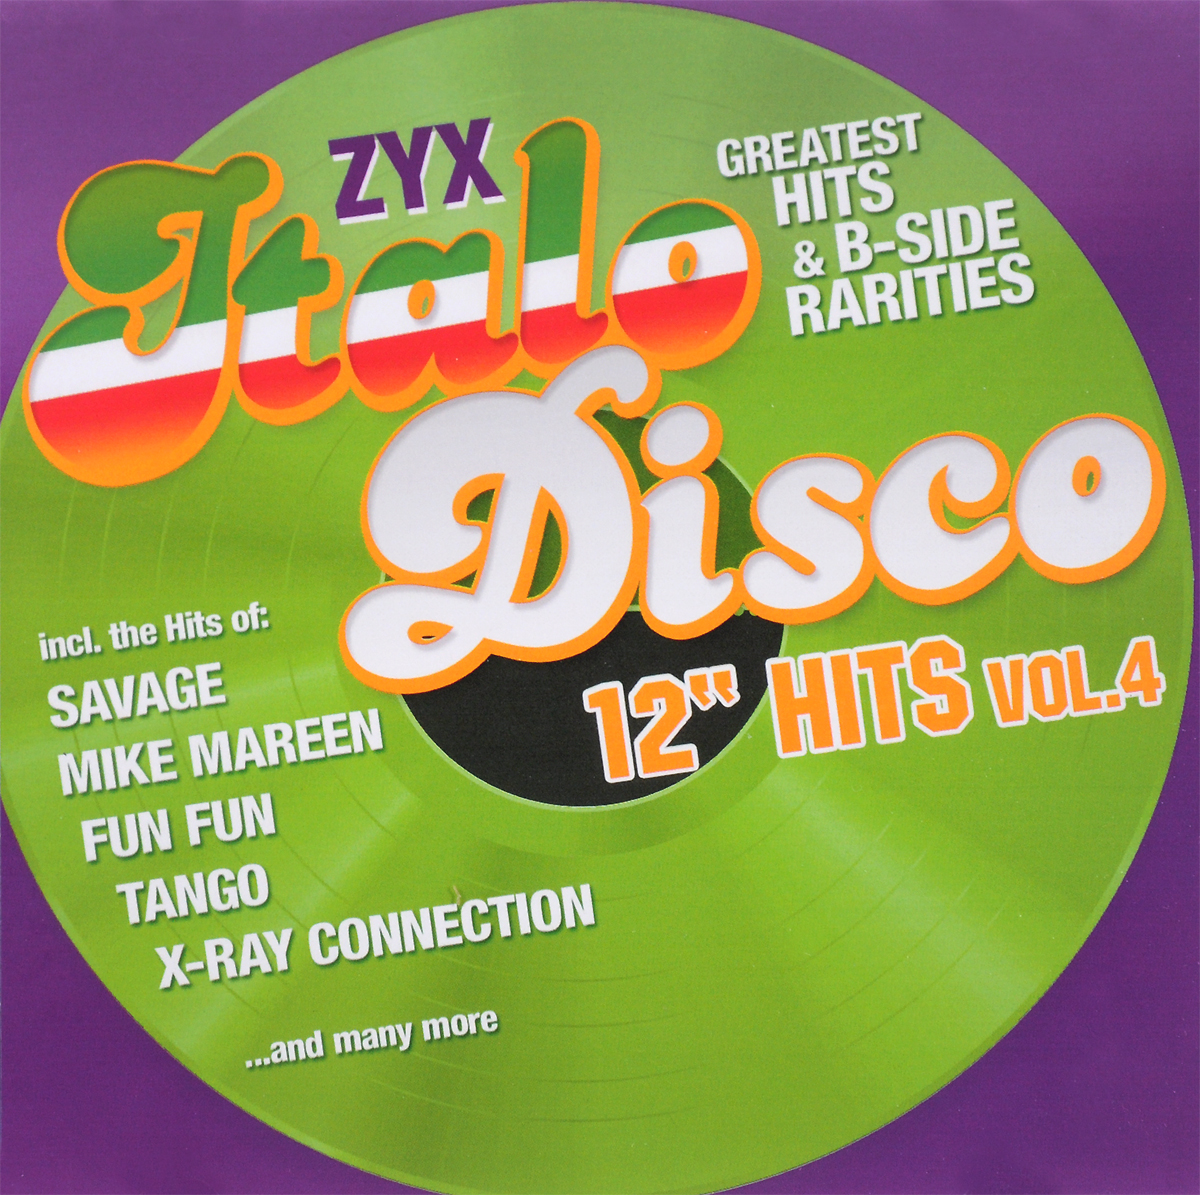 Fun Fun,Savage,Brando,Biba,X-Ray Connection,Майк Мэрин,Tango,Duke Lake,Patricia,Майк Роджерс,Flo Astaire Zyx Italo Disco 12 Hits Vol. 4 (2 CD) михаель бедфорд клифф тернер майк мэрин пэтти райан solid strangers джо локвуд italo disco collection 3 3 cd